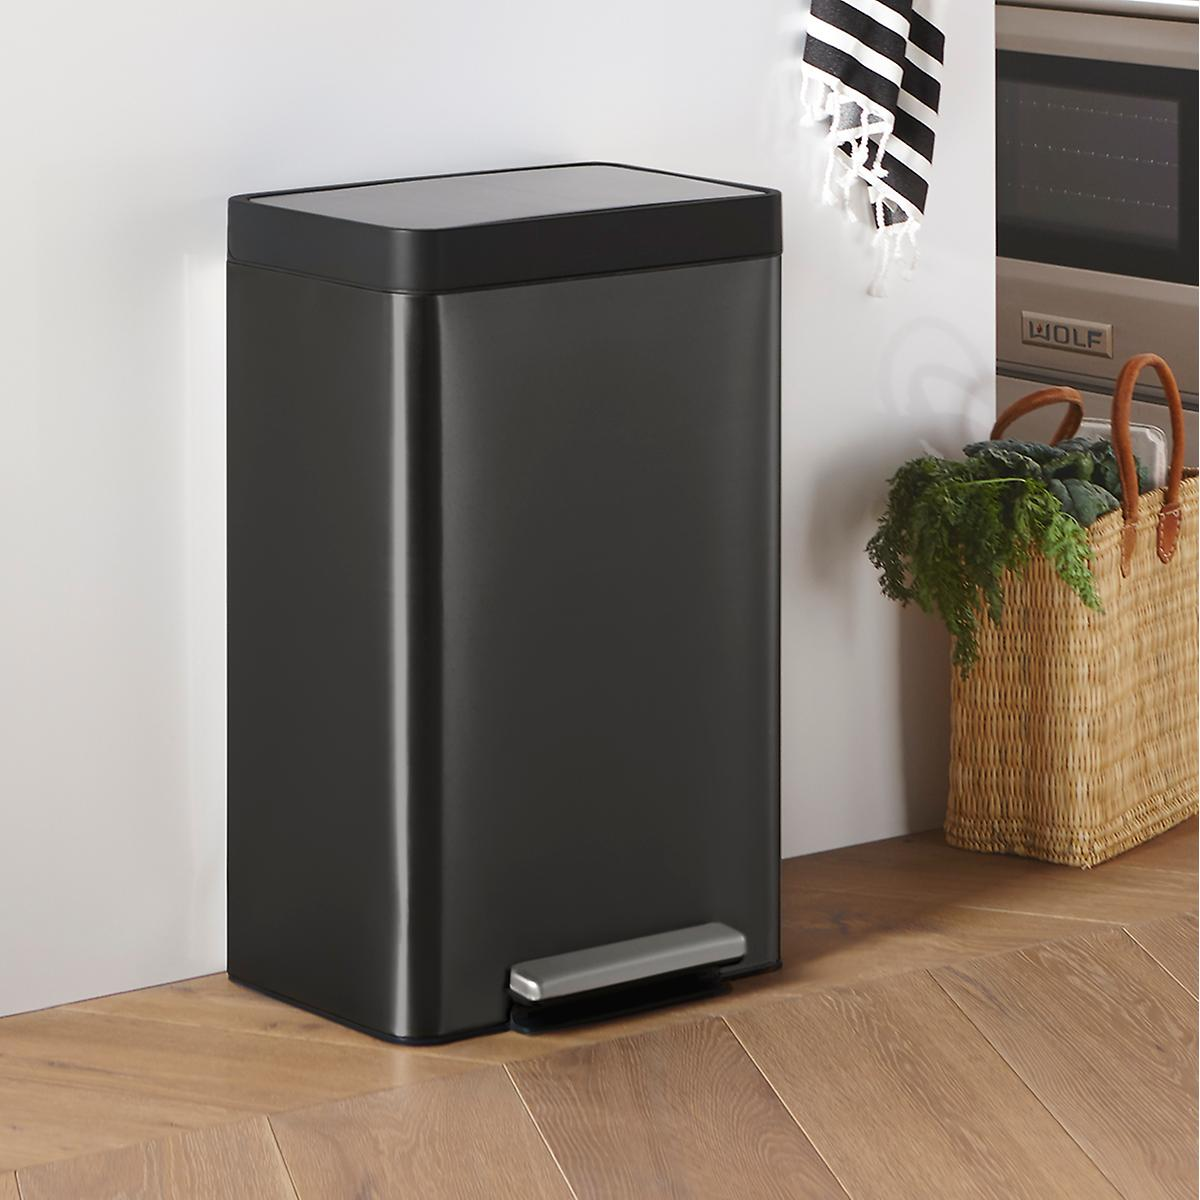 Kohler Black Stainless Steel 13 gal. Step Trash Can